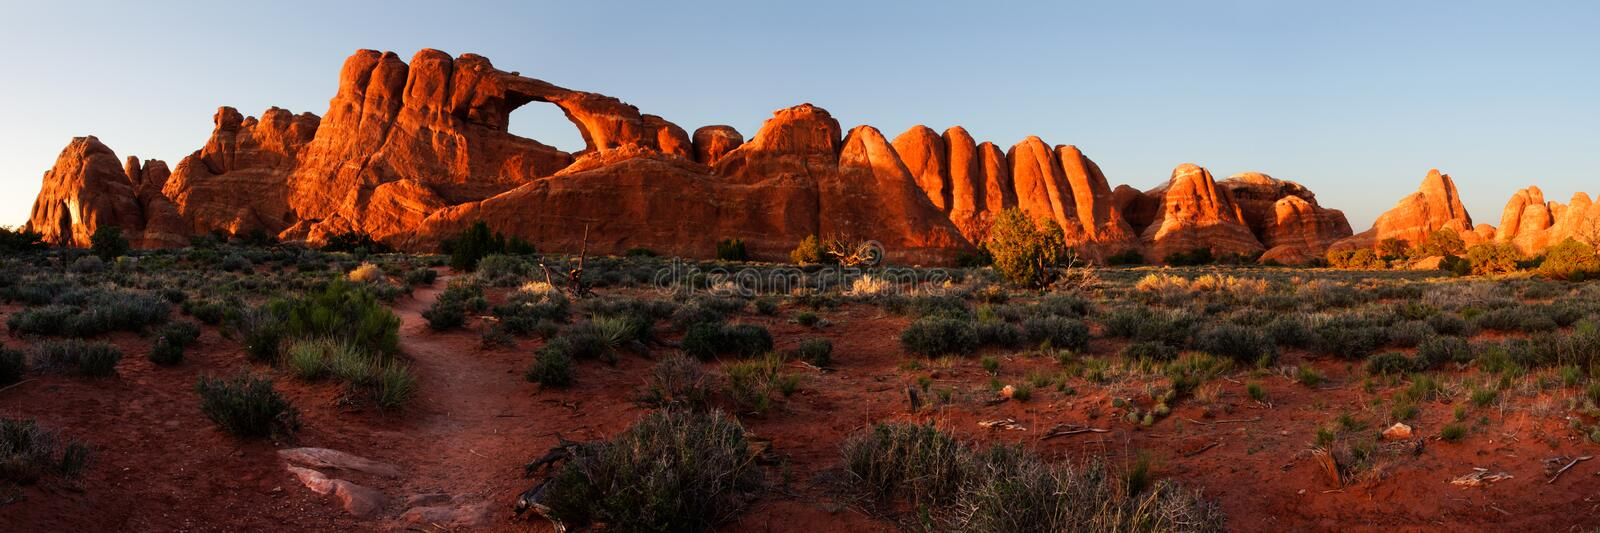 Skyline Arch at Sunset - stitched panrama stock photos